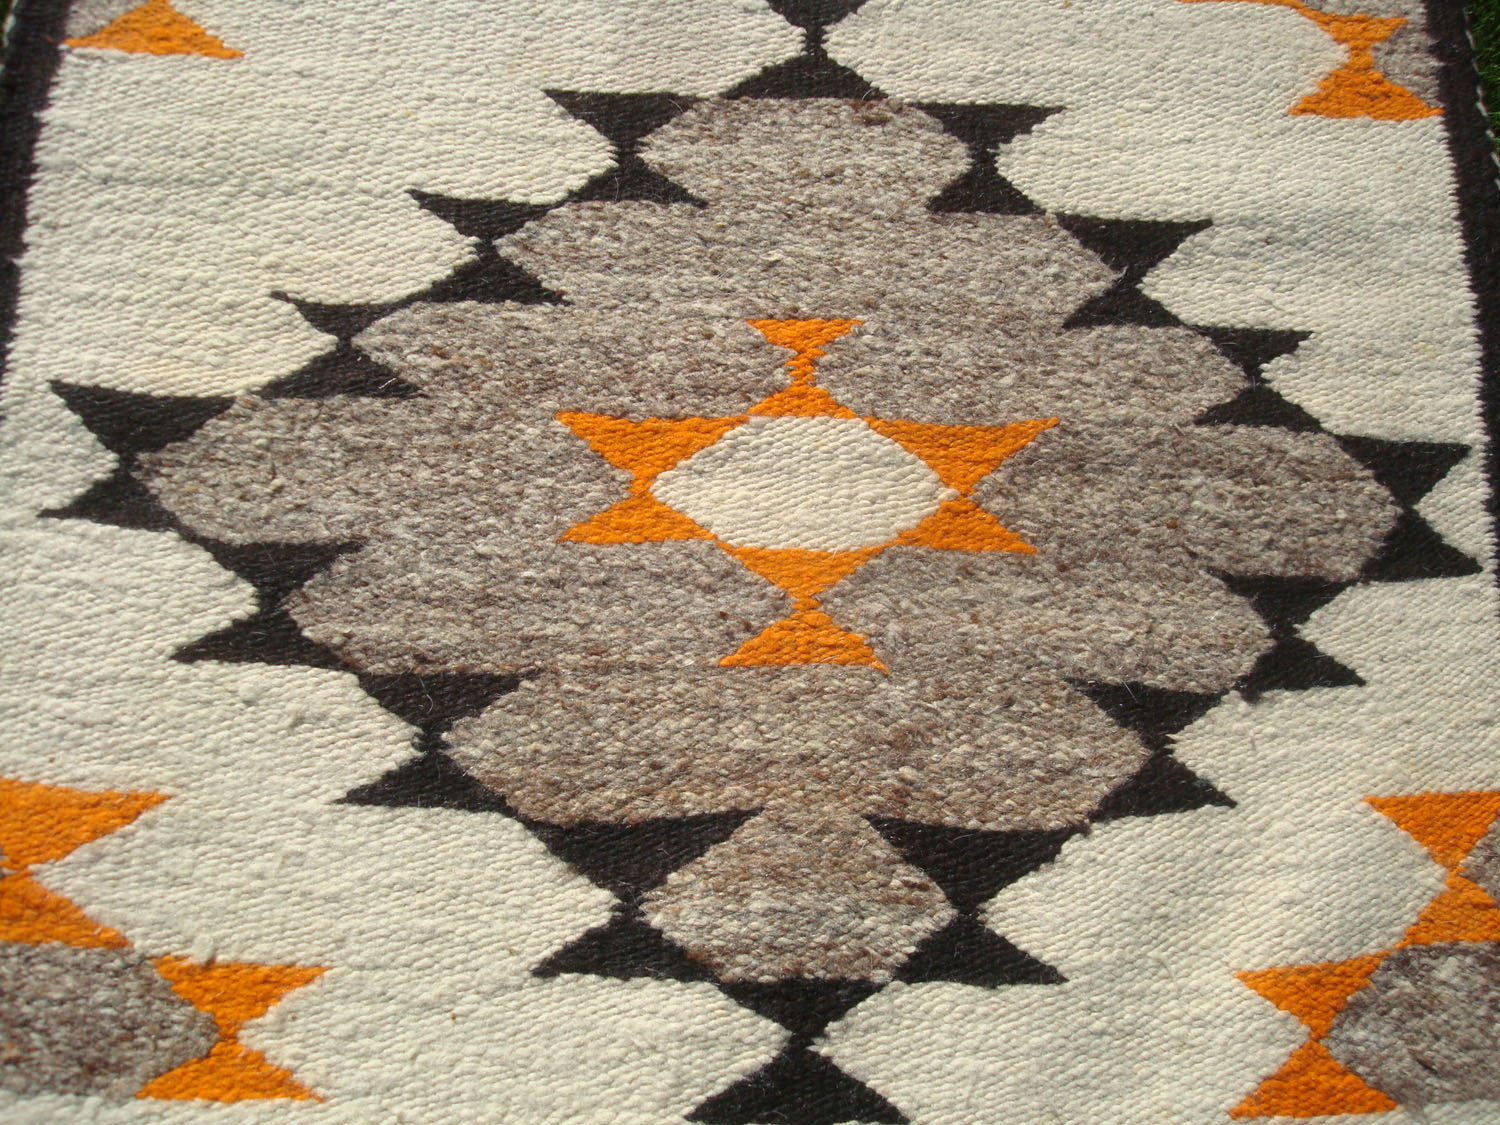 Native American Design Rugs - Rug Designs